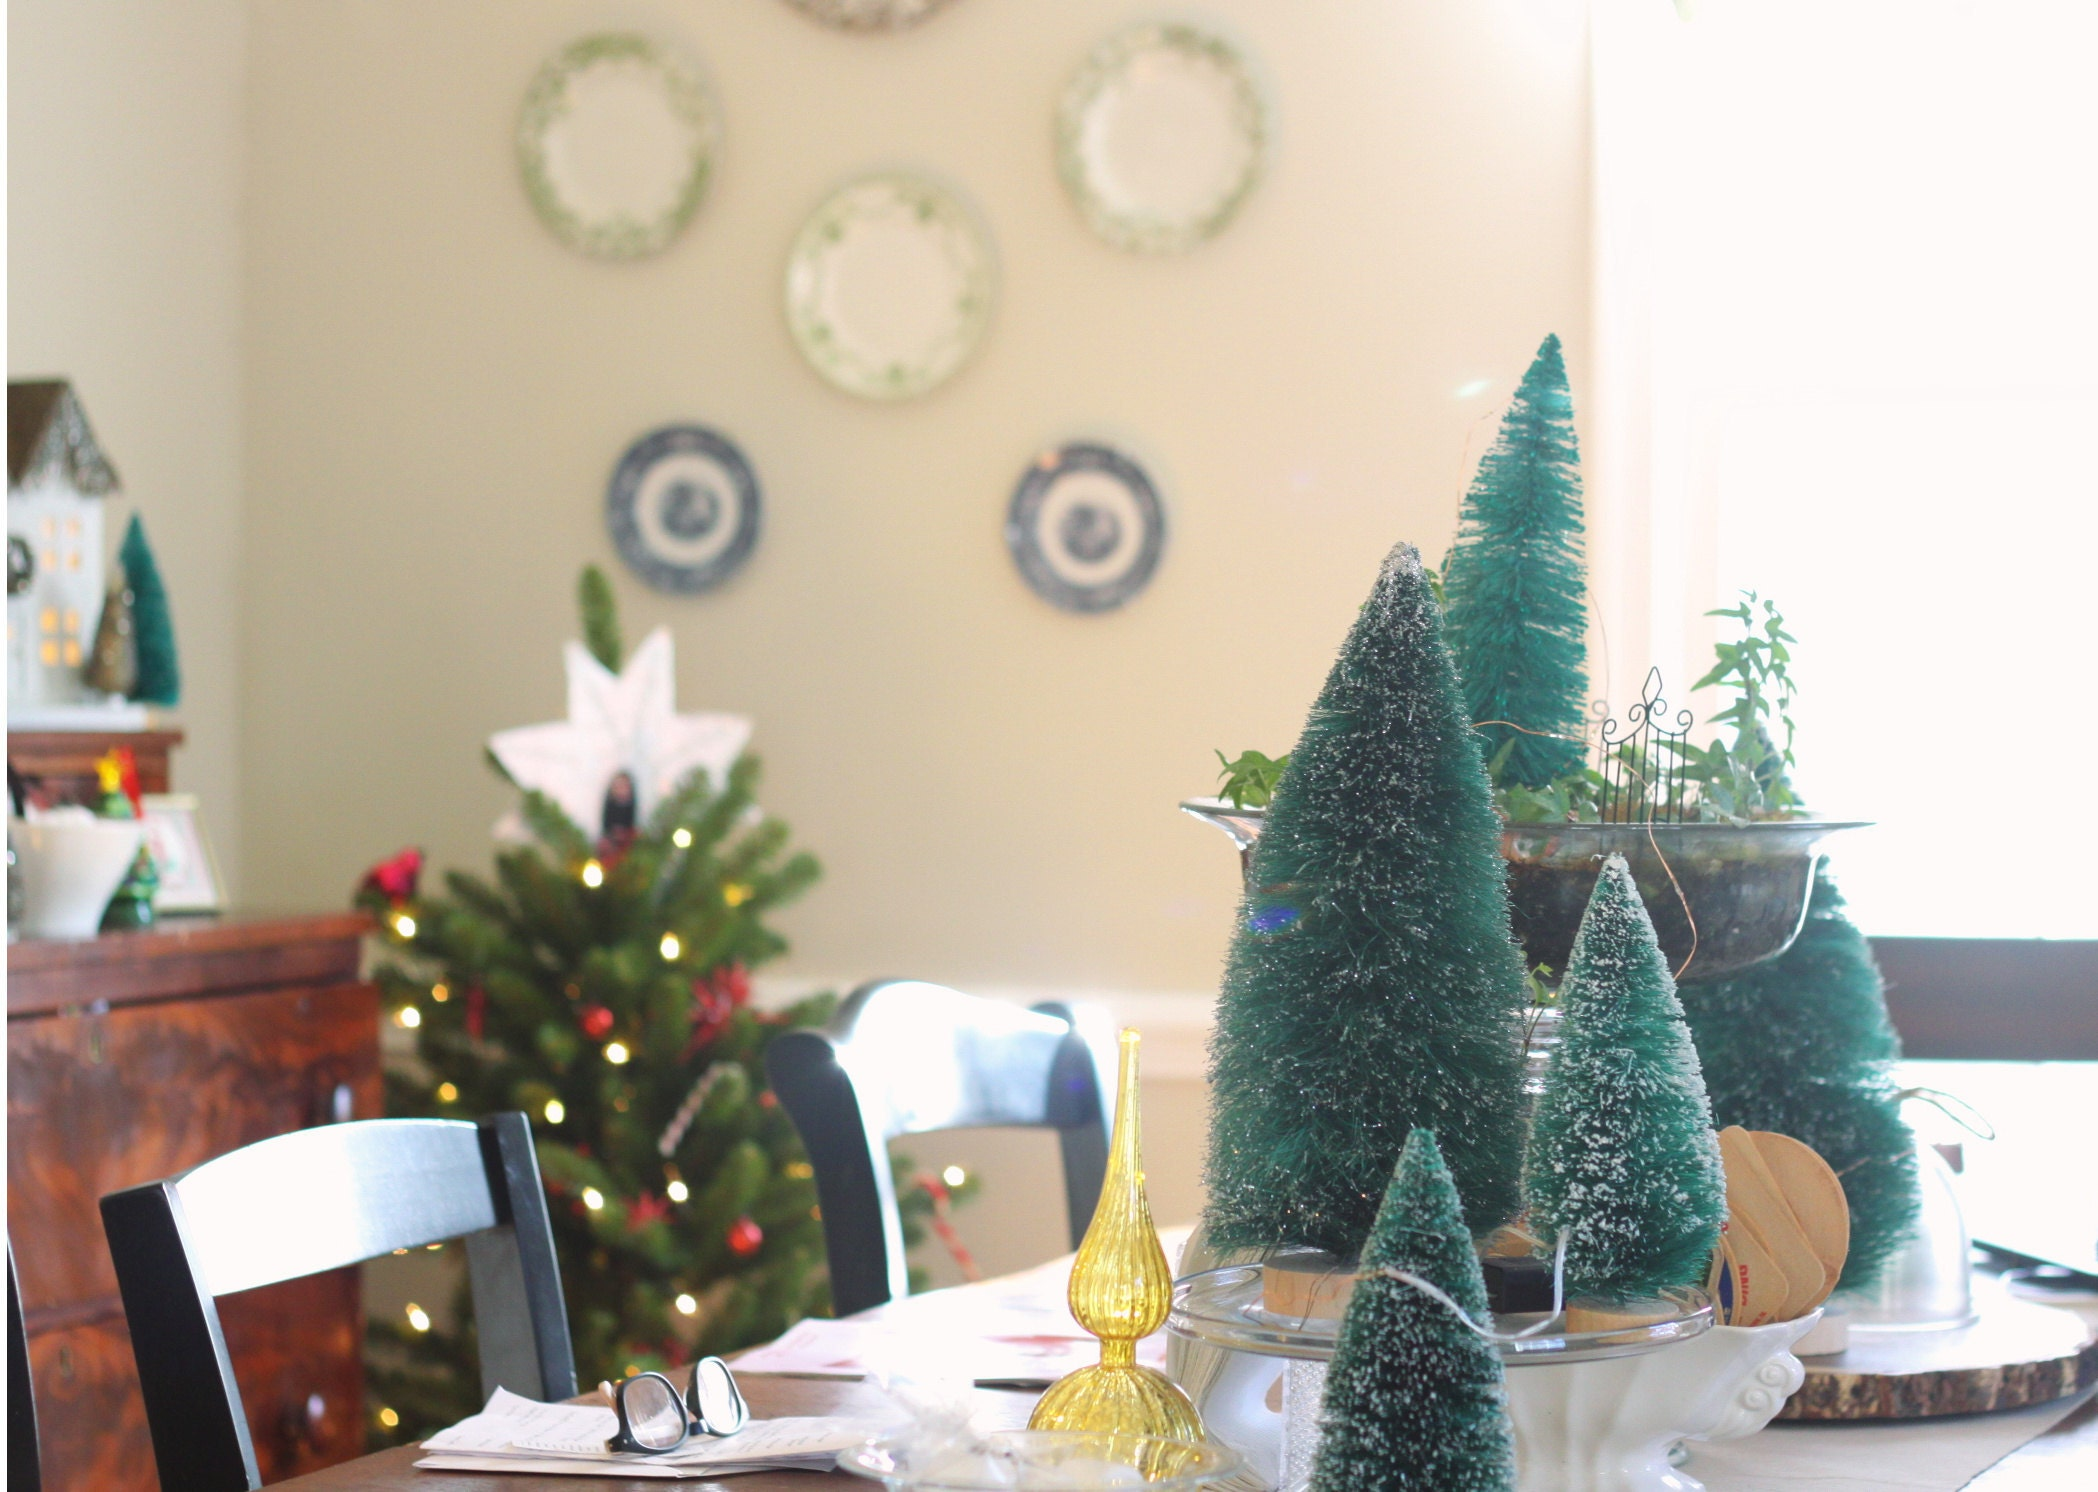 Bottle Brush Tree Decorating Ideas in the dining room